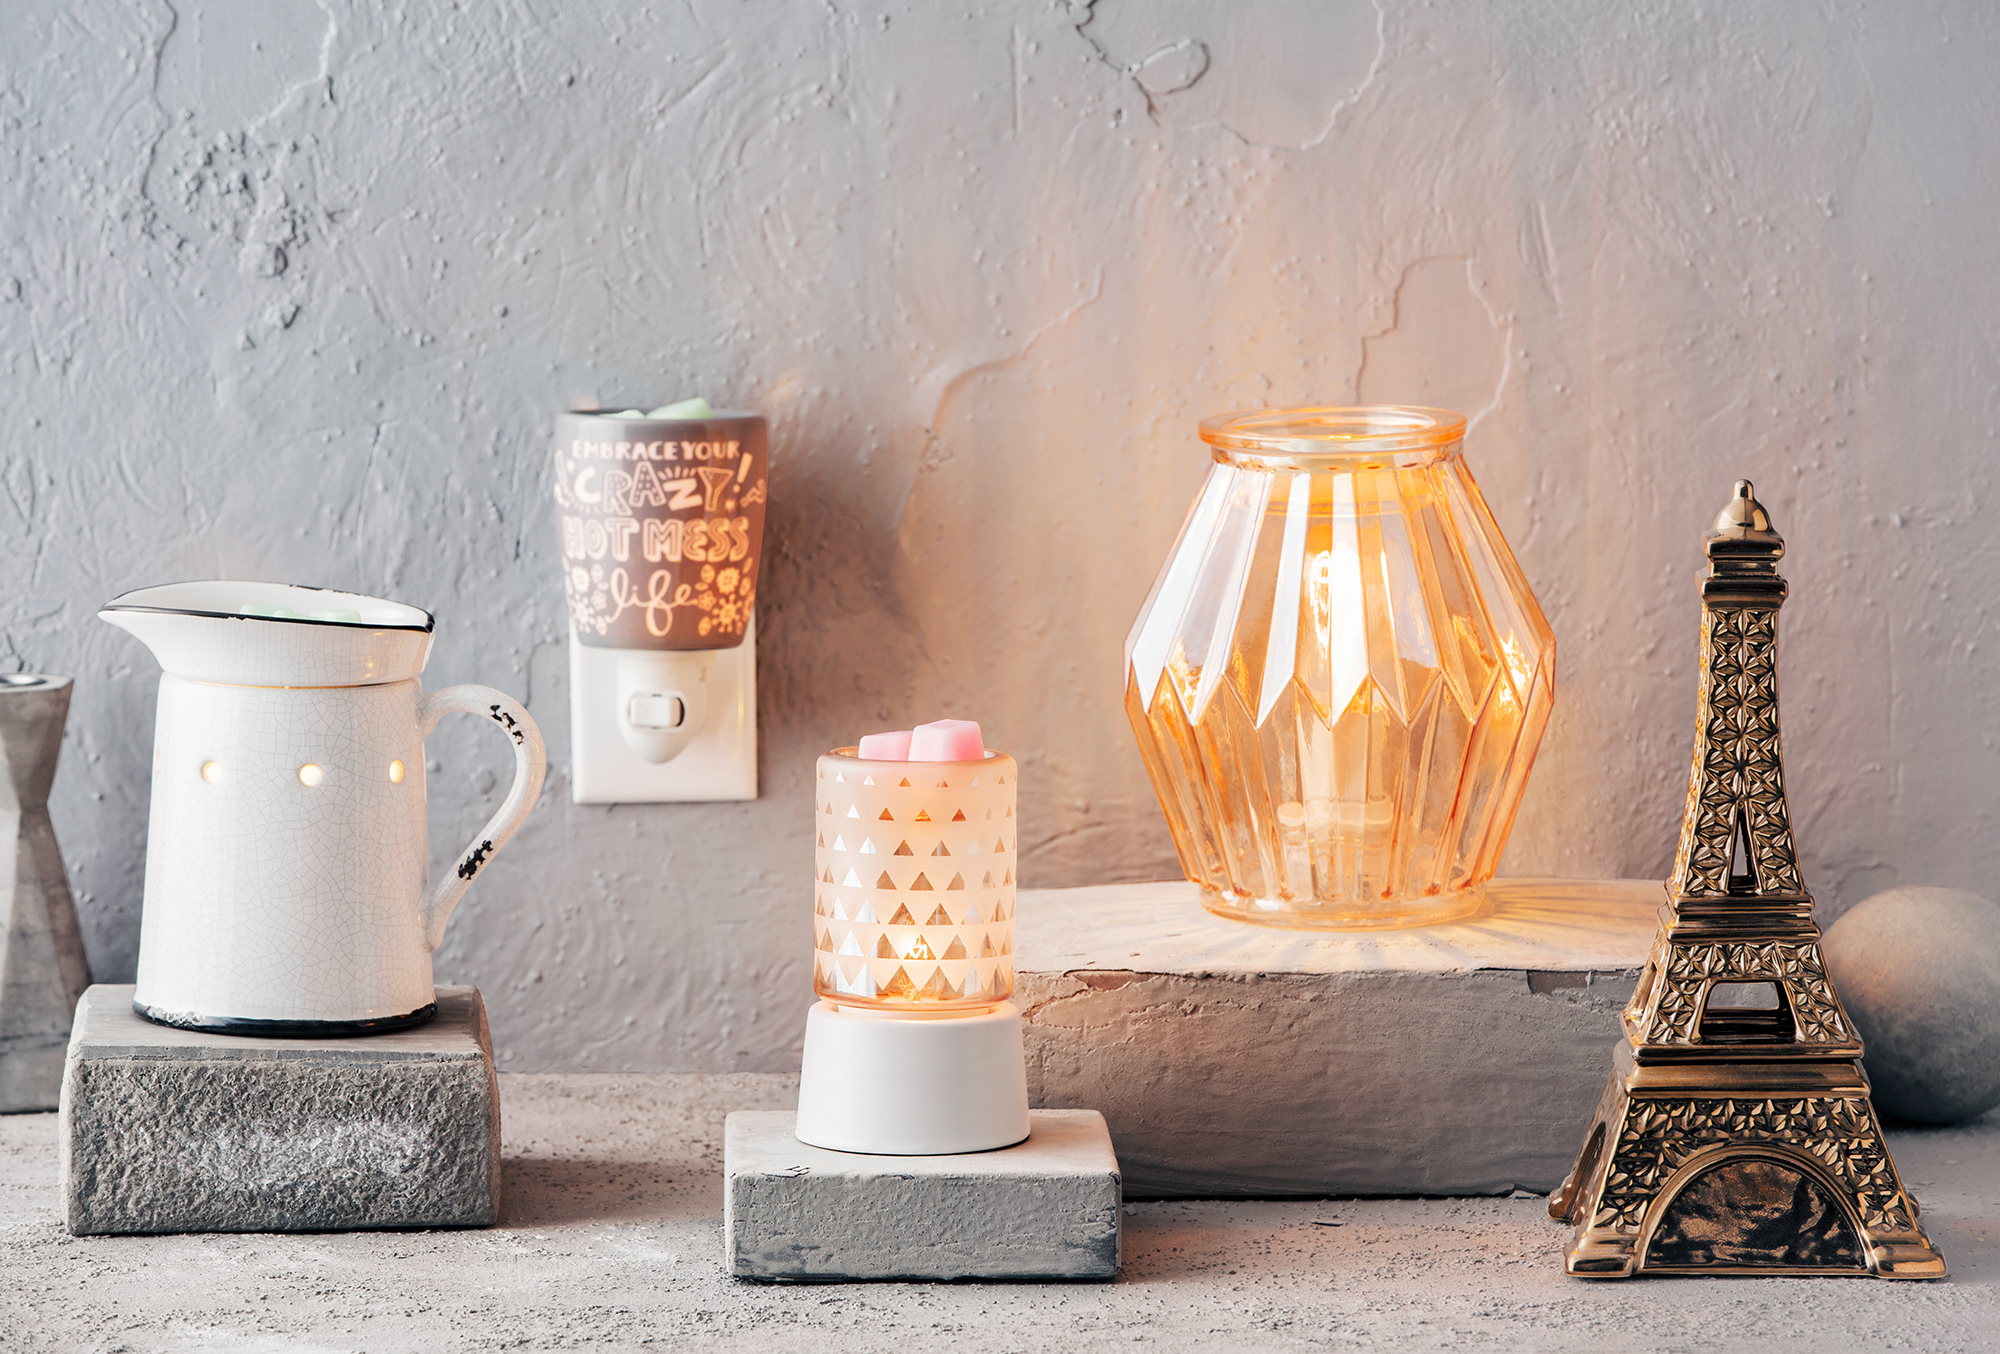 Line up of Scentsy's diverse and unique warmers